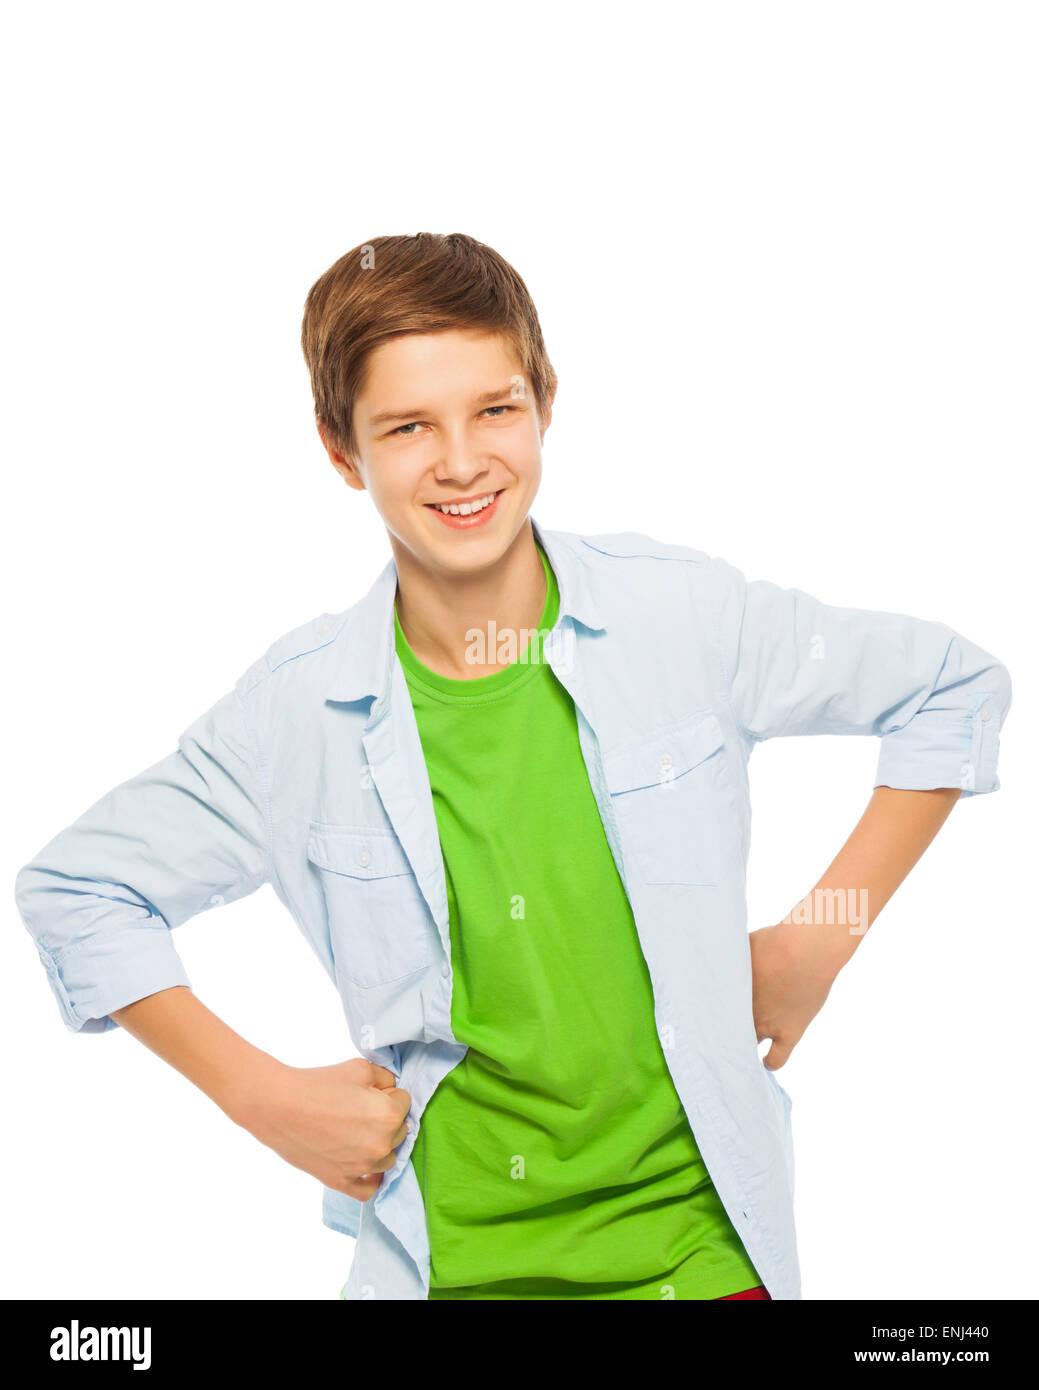 Cute Stock Photography: Cute Young Teen Boy Smiling With Hands On Waist Stock